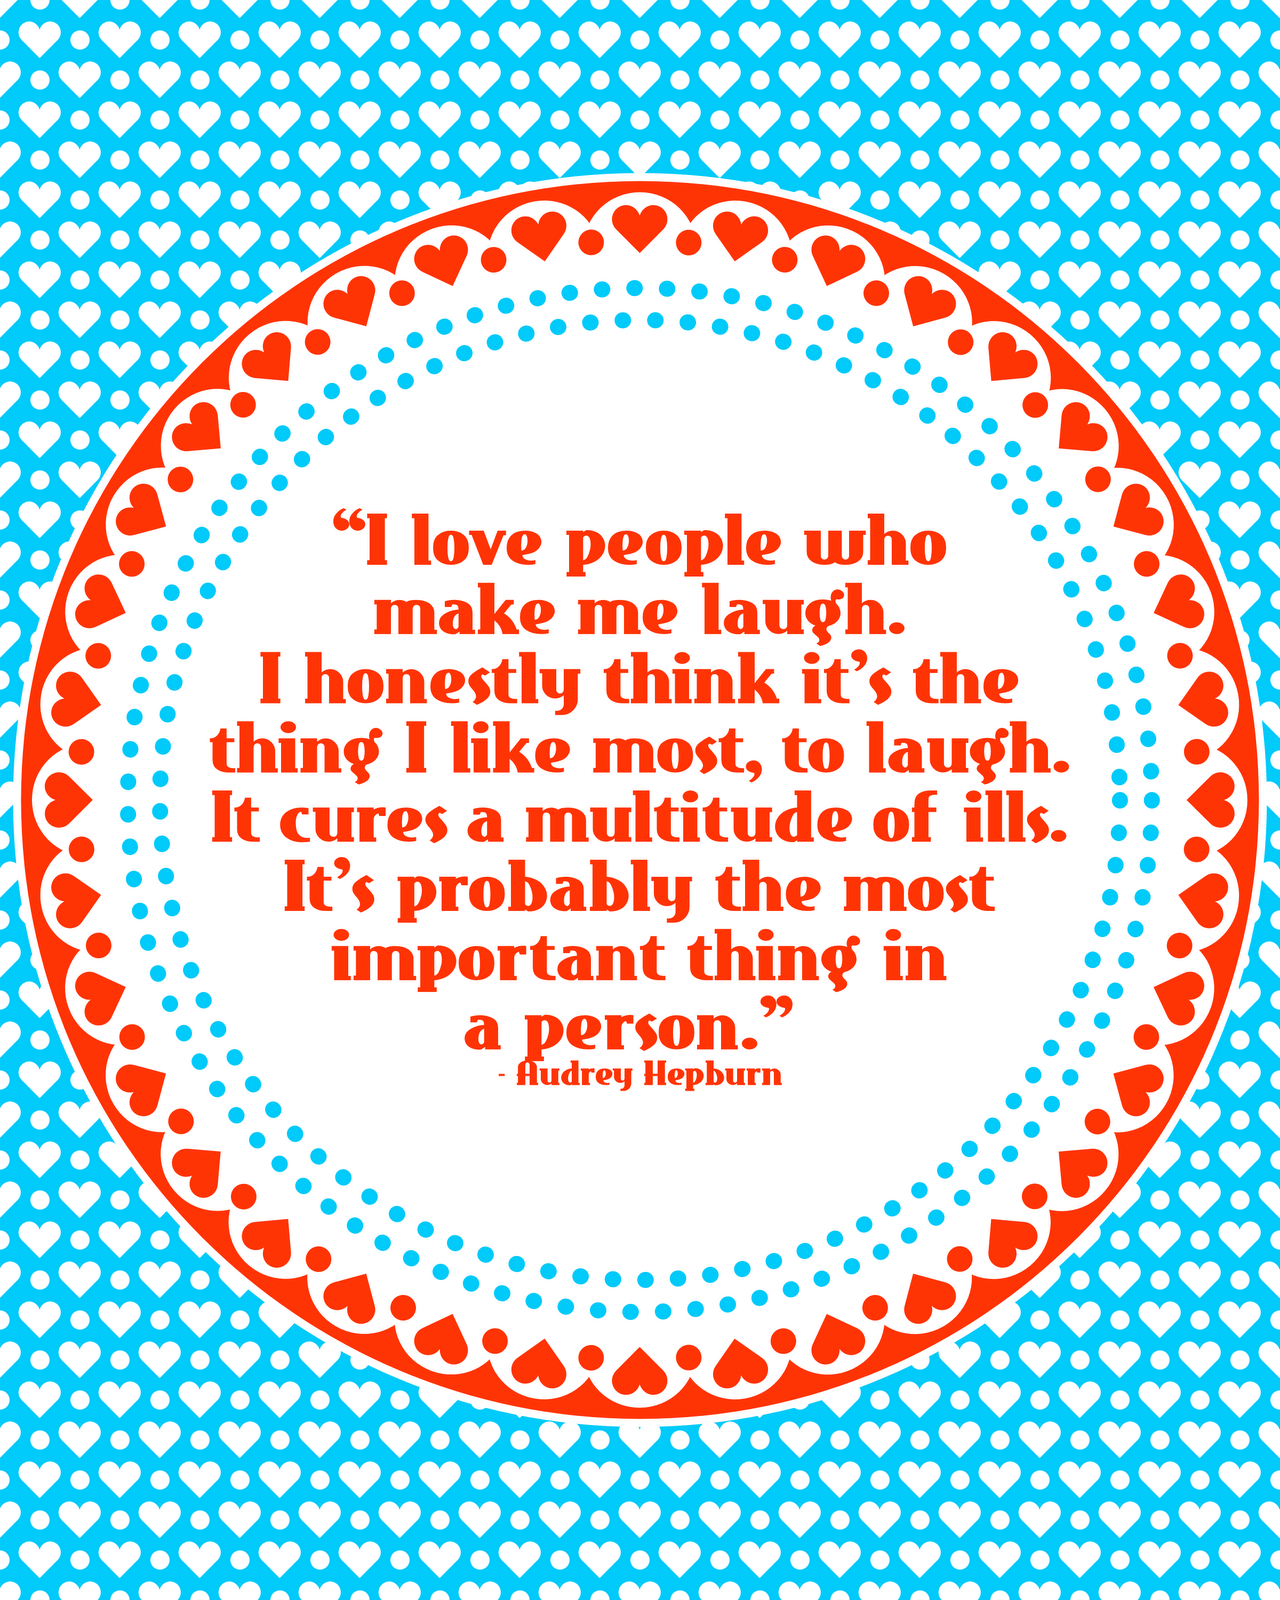 Printable Quote about LaughterQuotes About Laughter